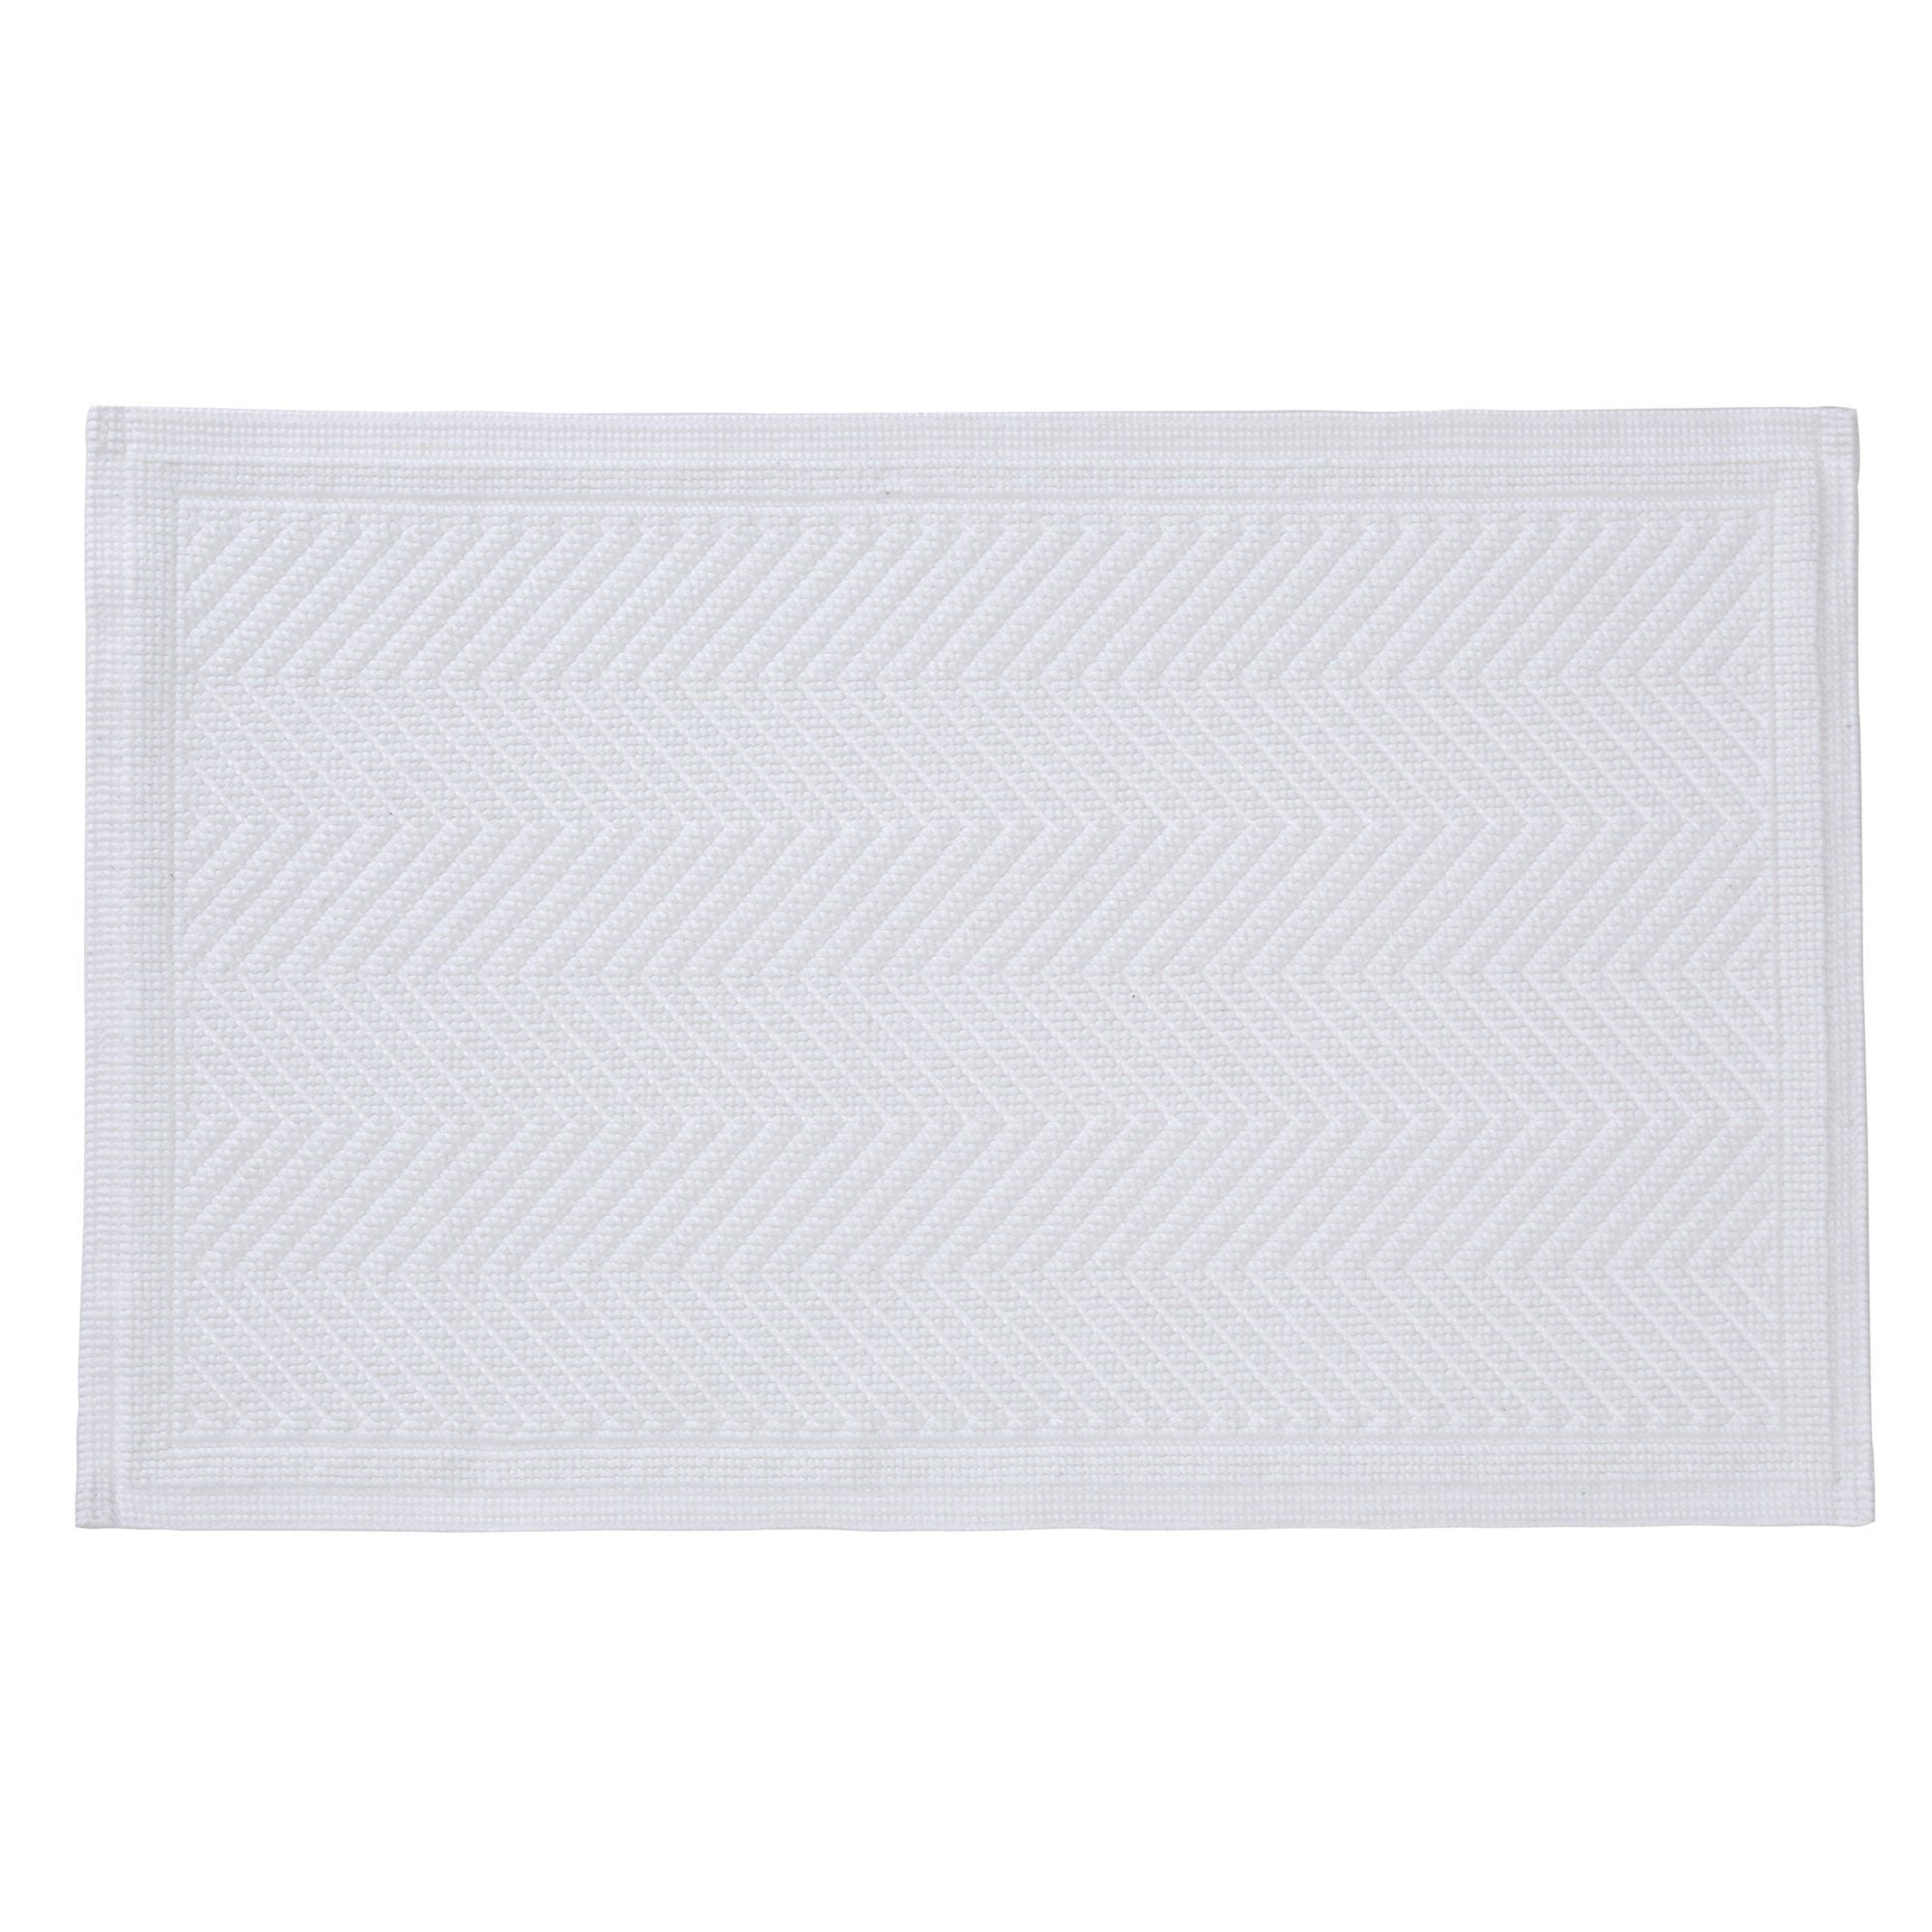 Tajo bath mat, white, 100% cotton